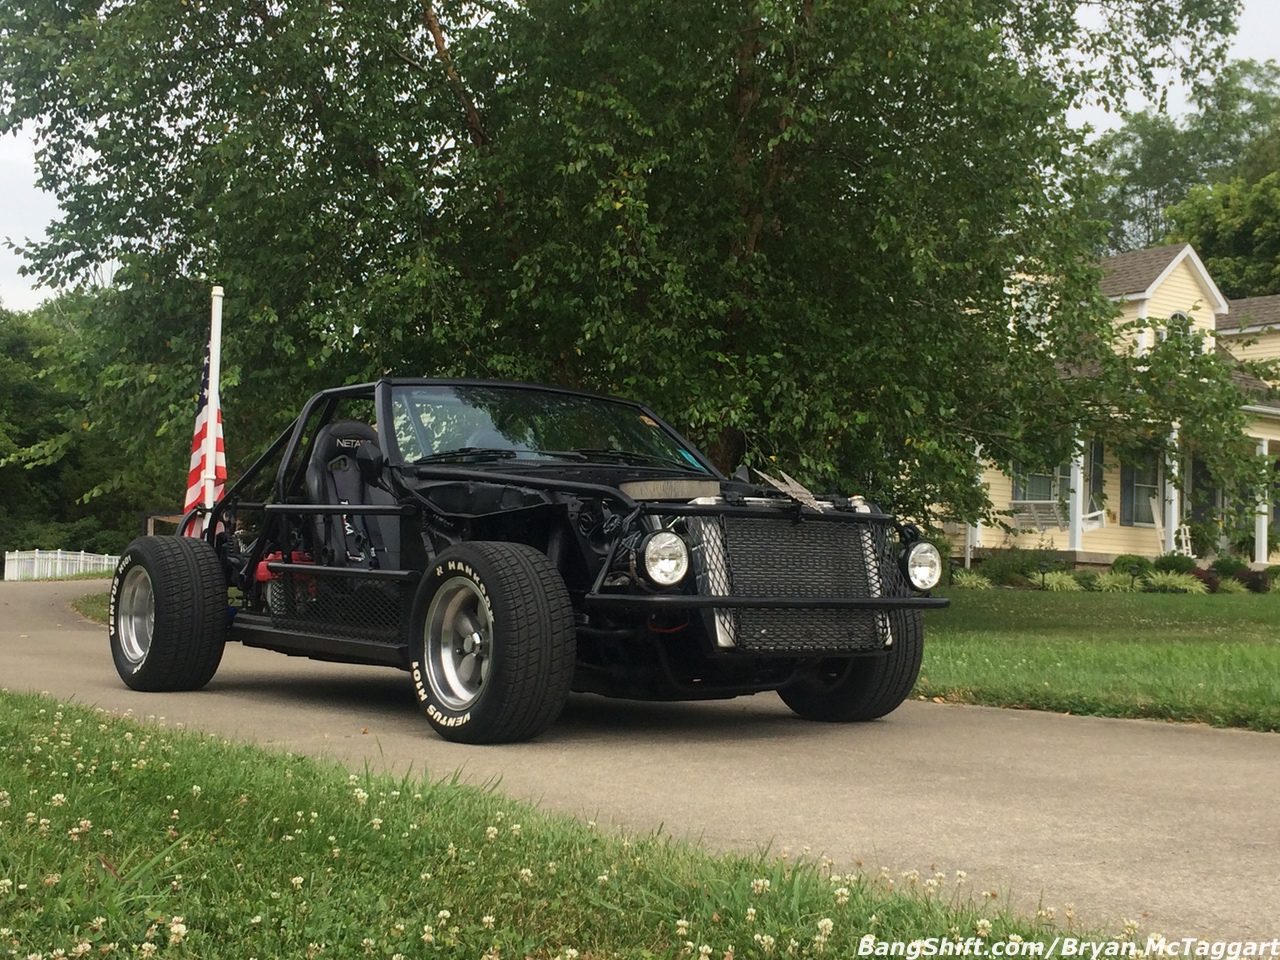 Best of 2019: FoxKart – How An Ohio-Rotted 1986 Mustang Convertible Got A Second Lease On Life!